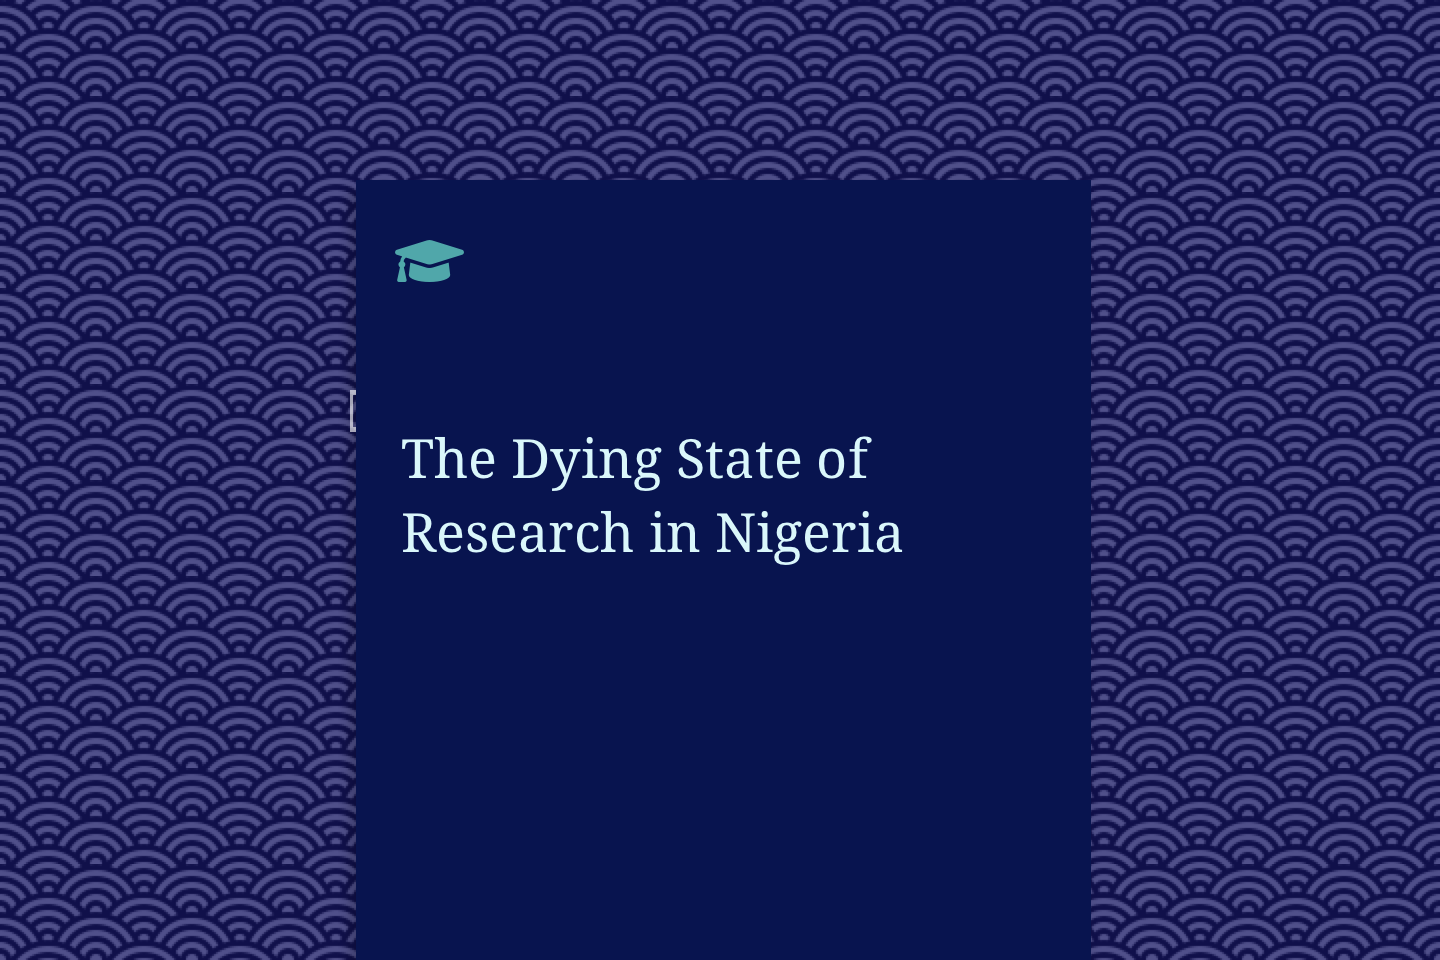 The Dying State of Research in Nigeria